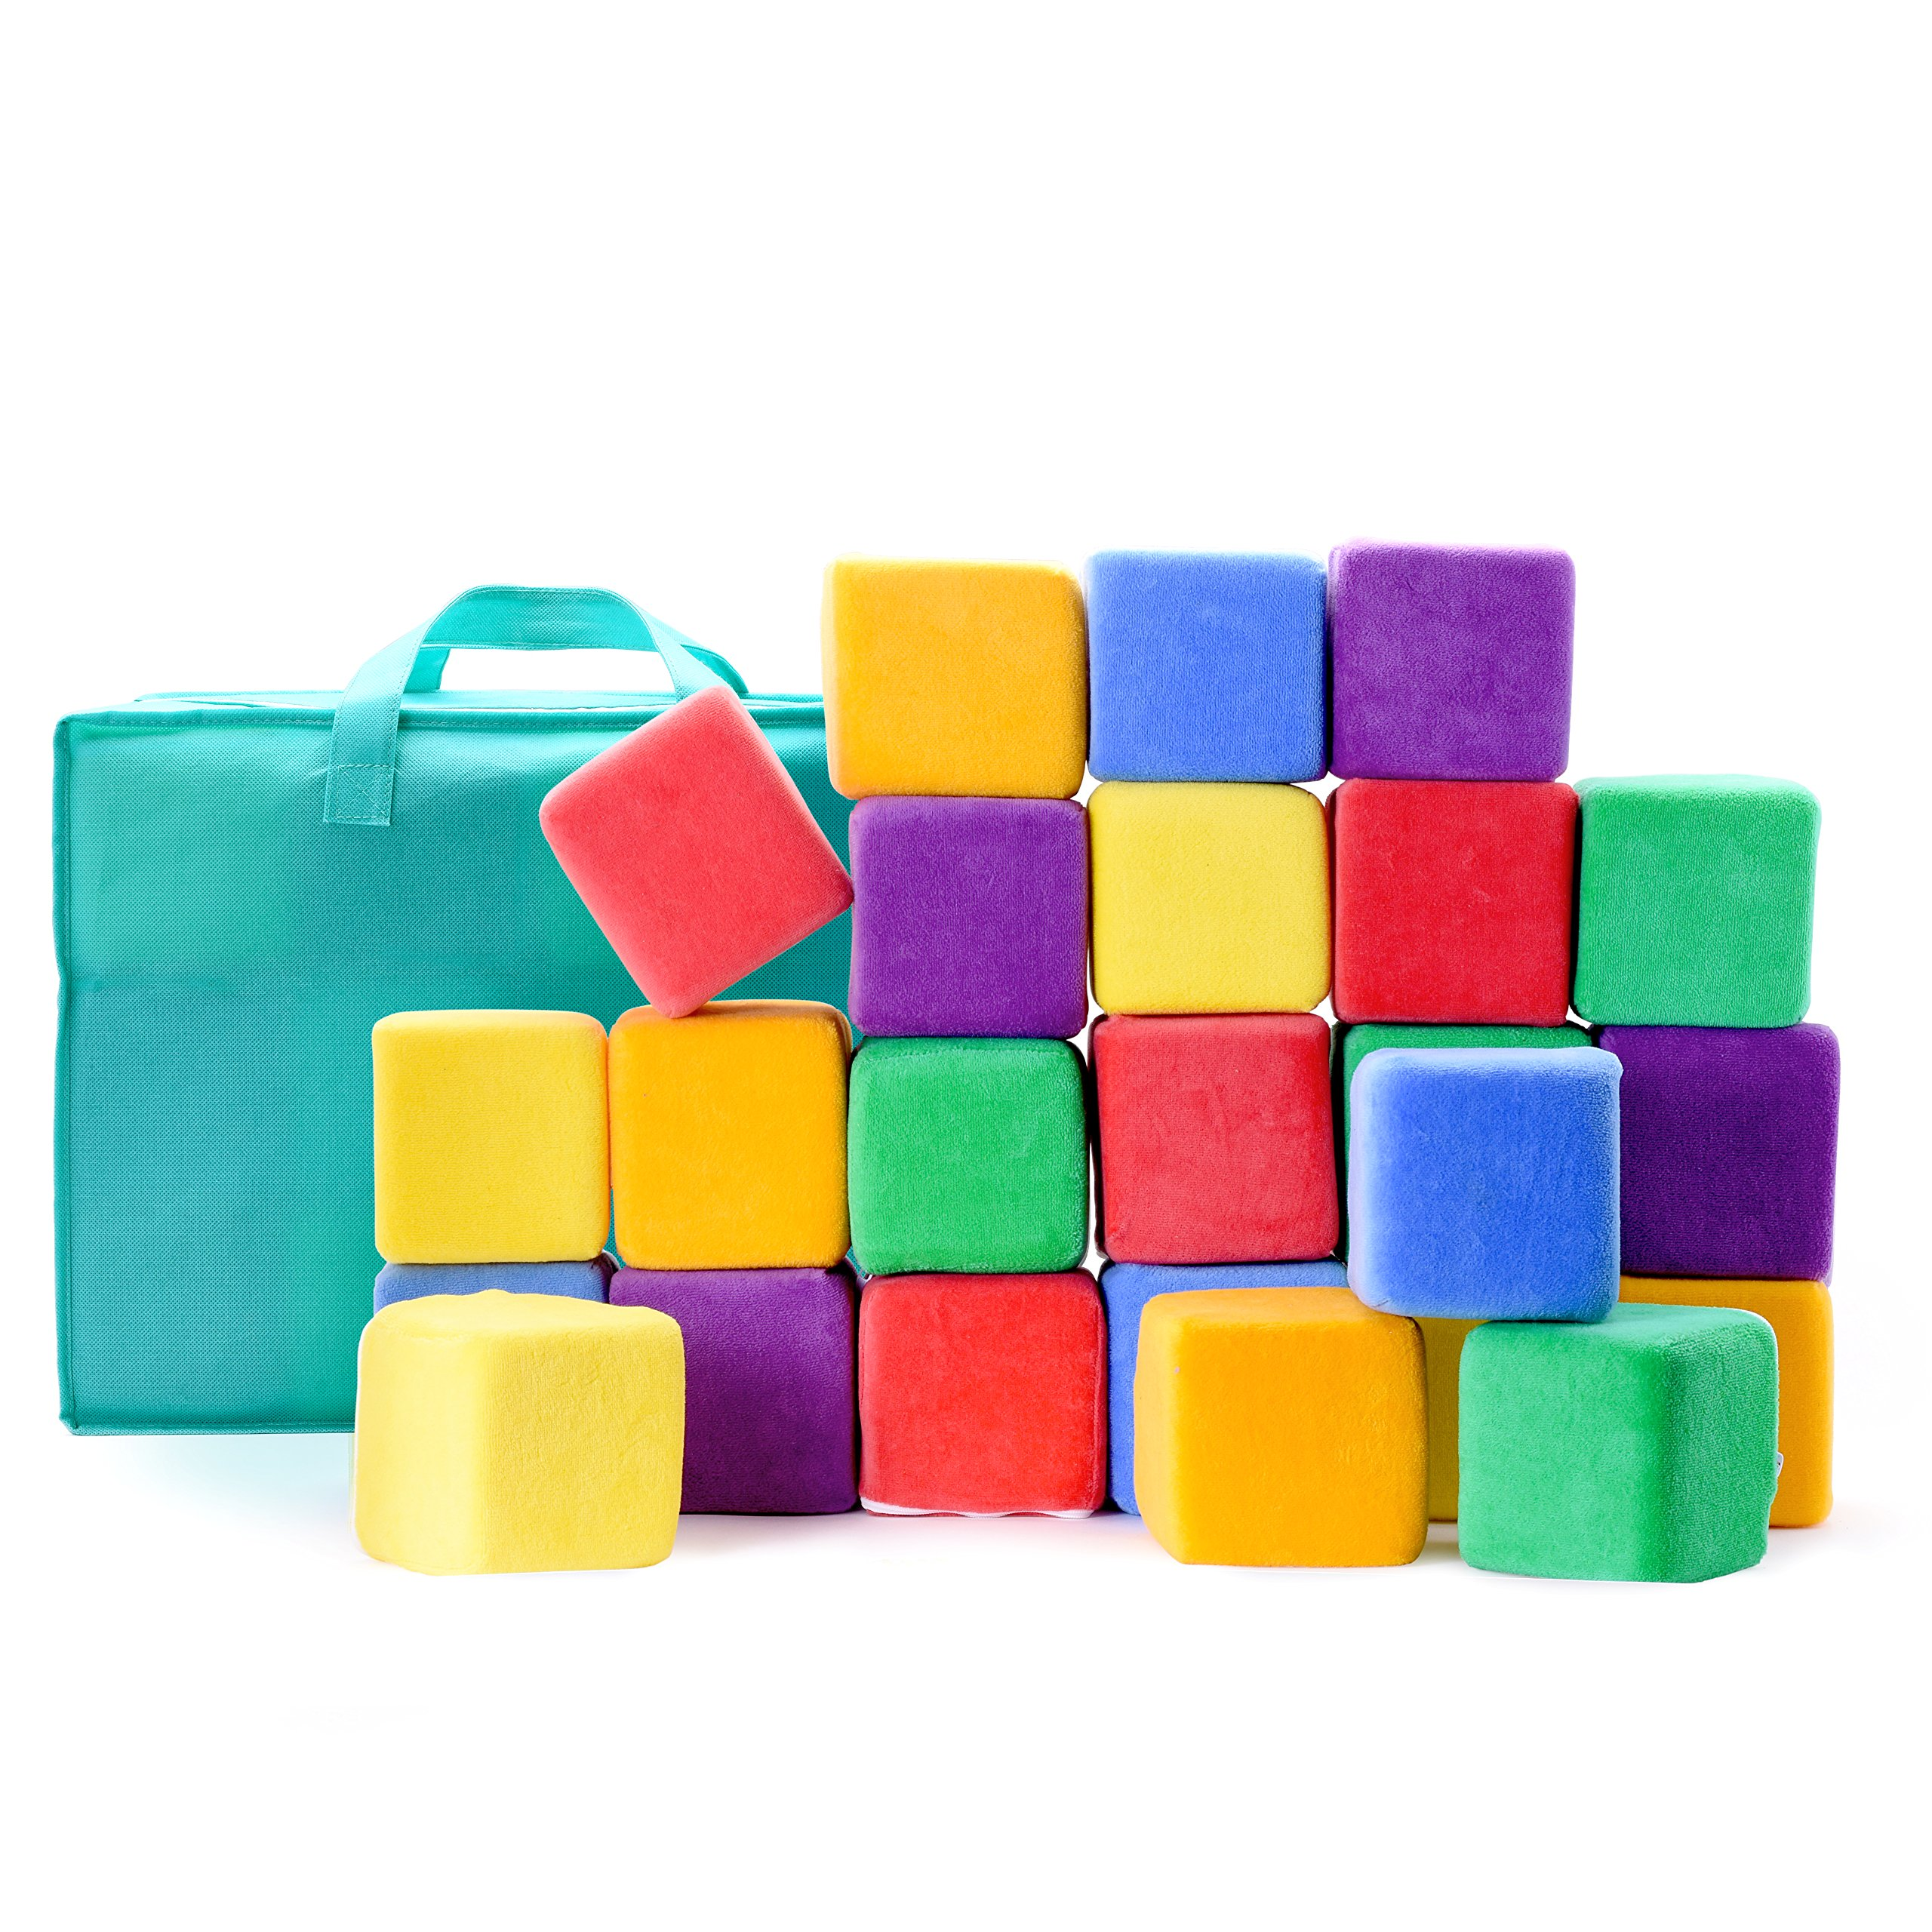 Milliard Soft Foam Blocks, JUMBO Size, for Stacking Sorting and Building, 24 4'' Cubes with Removable Covers and Carry Bag